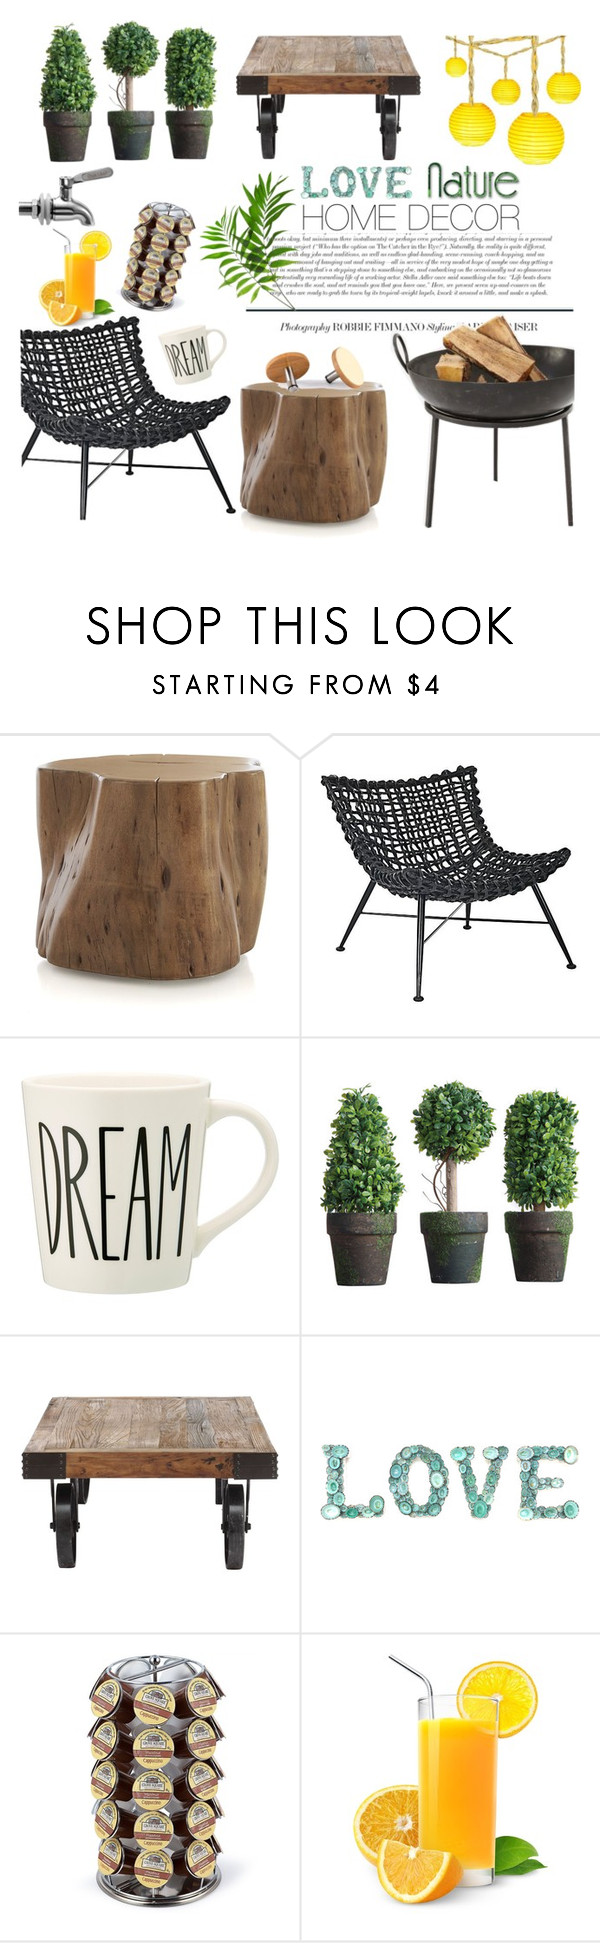 Love Nature by ioakleaf on Polyvore featuring interior, interiors, interior design, home, home decor, interior decorating, Zuo, Crate and Barrel and Keurig